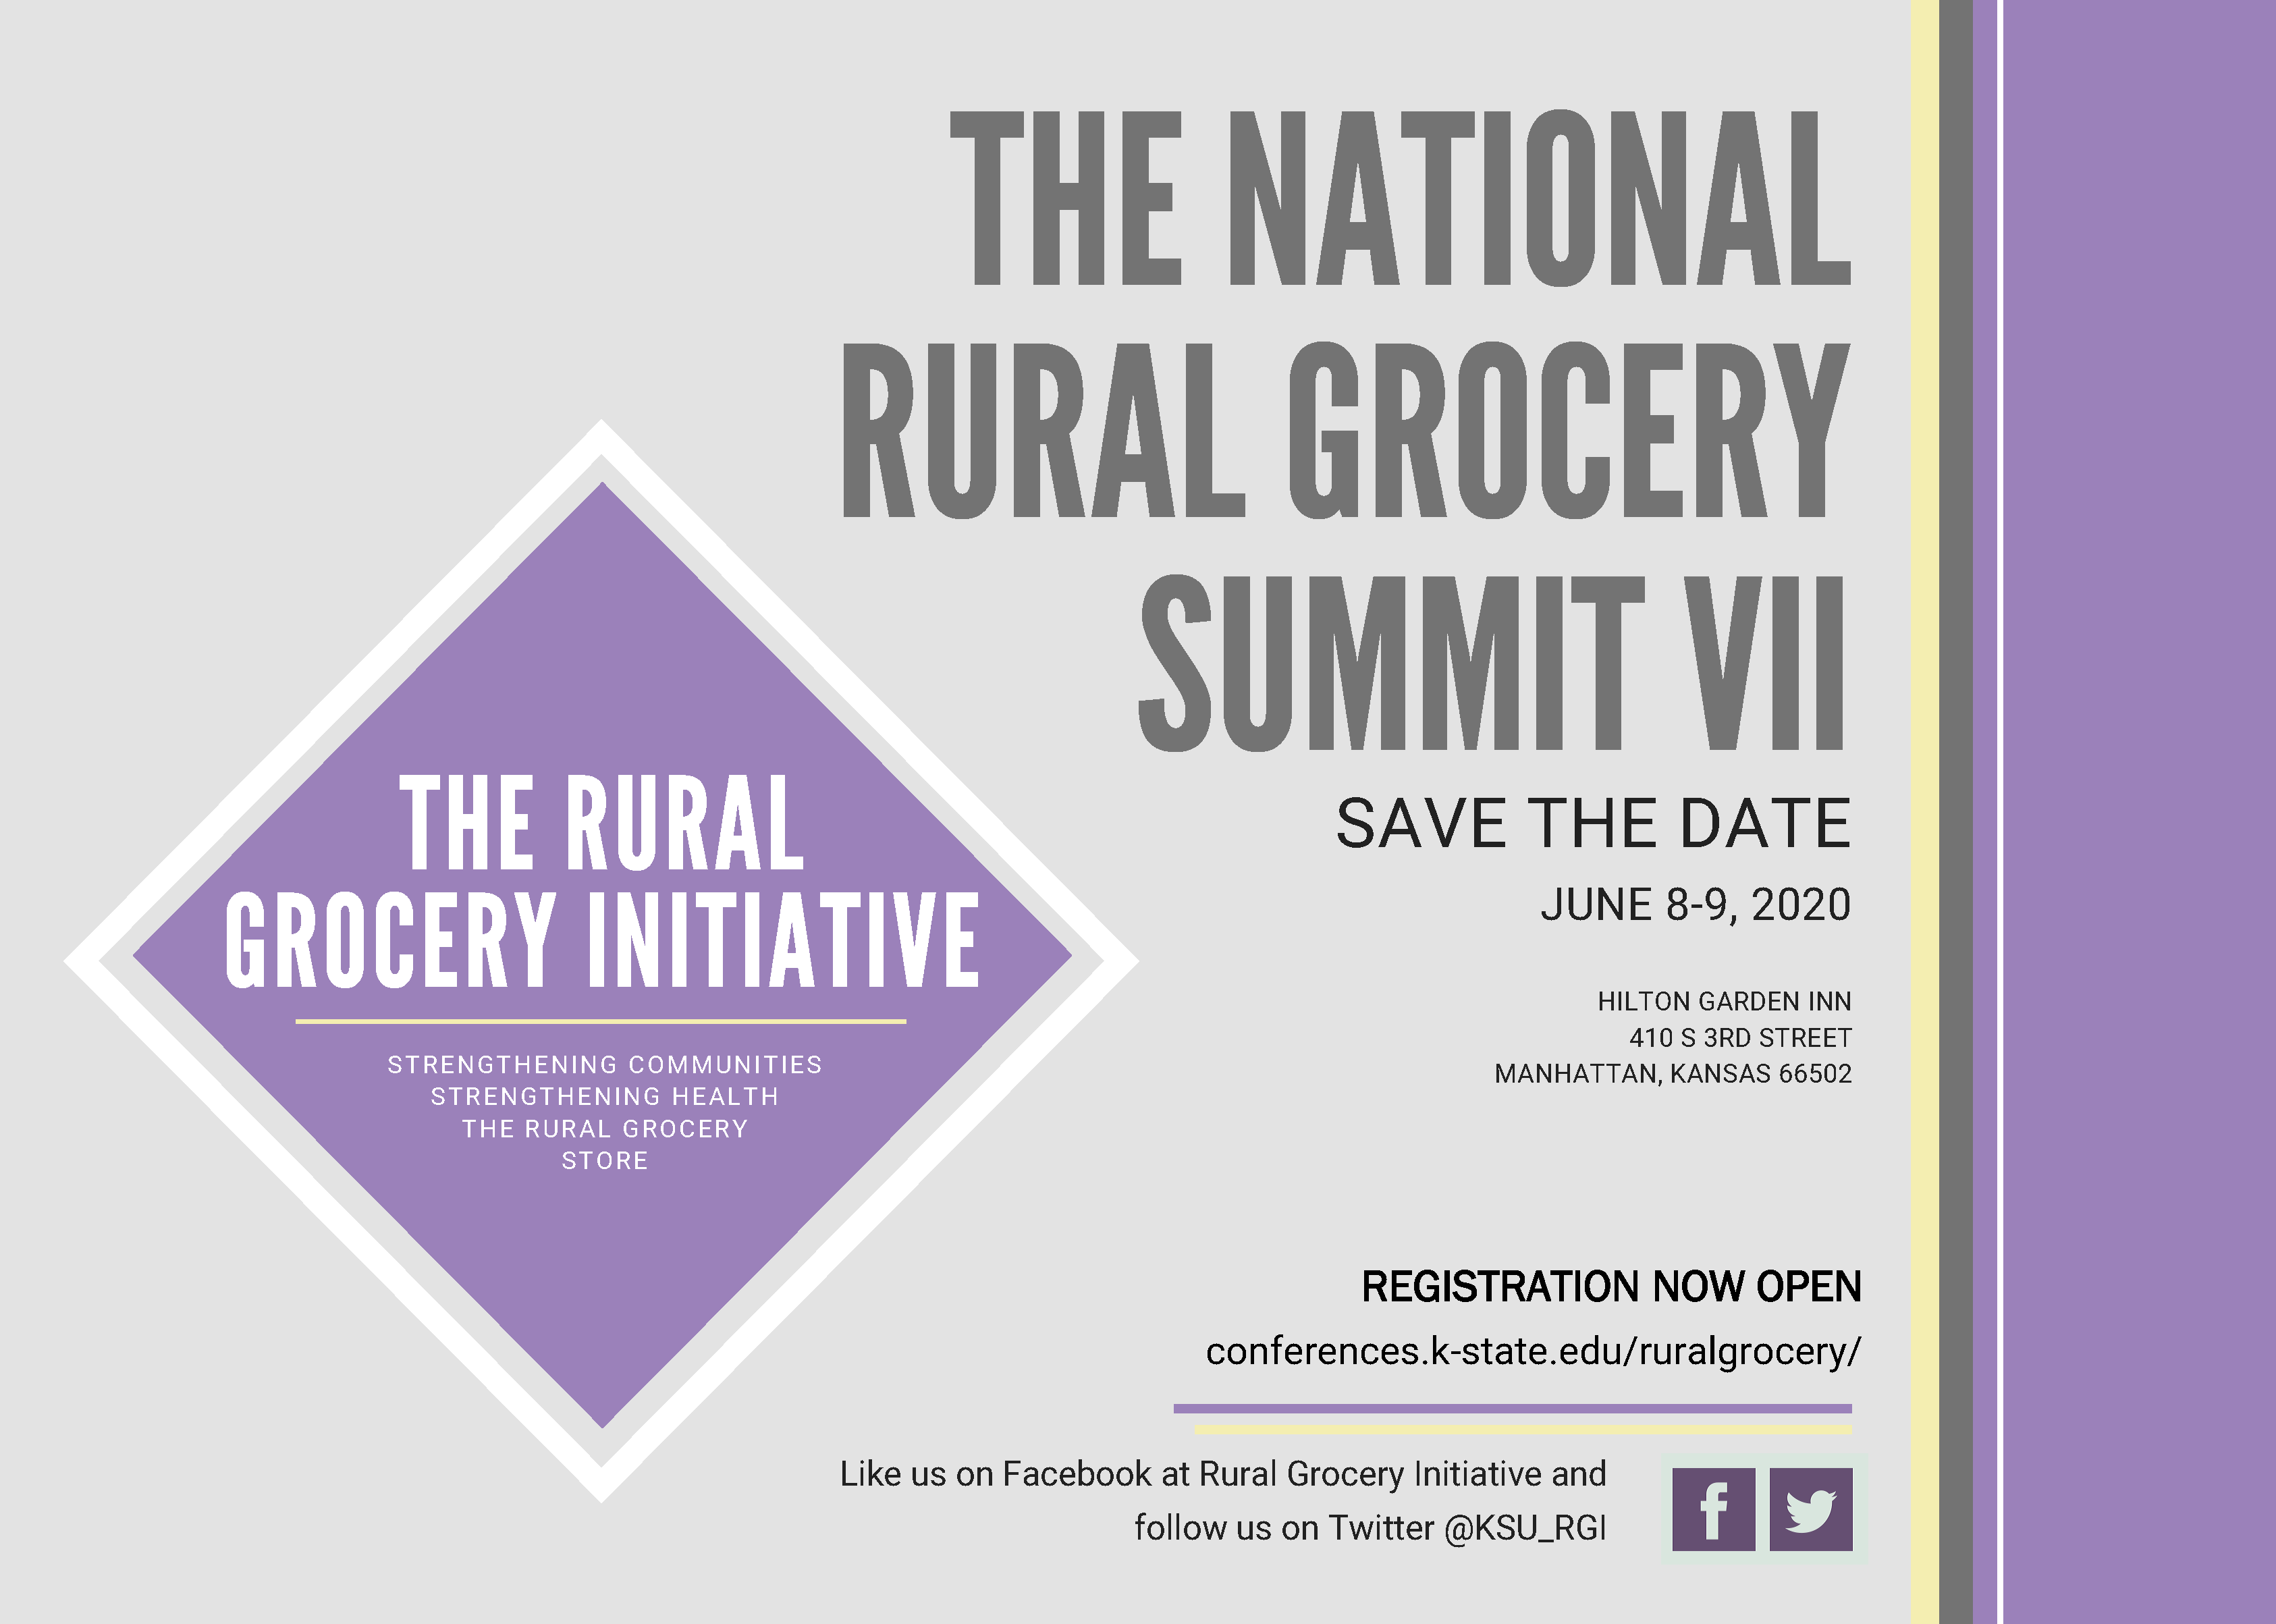 Save the Date for 2020 Rural Grocery Summit